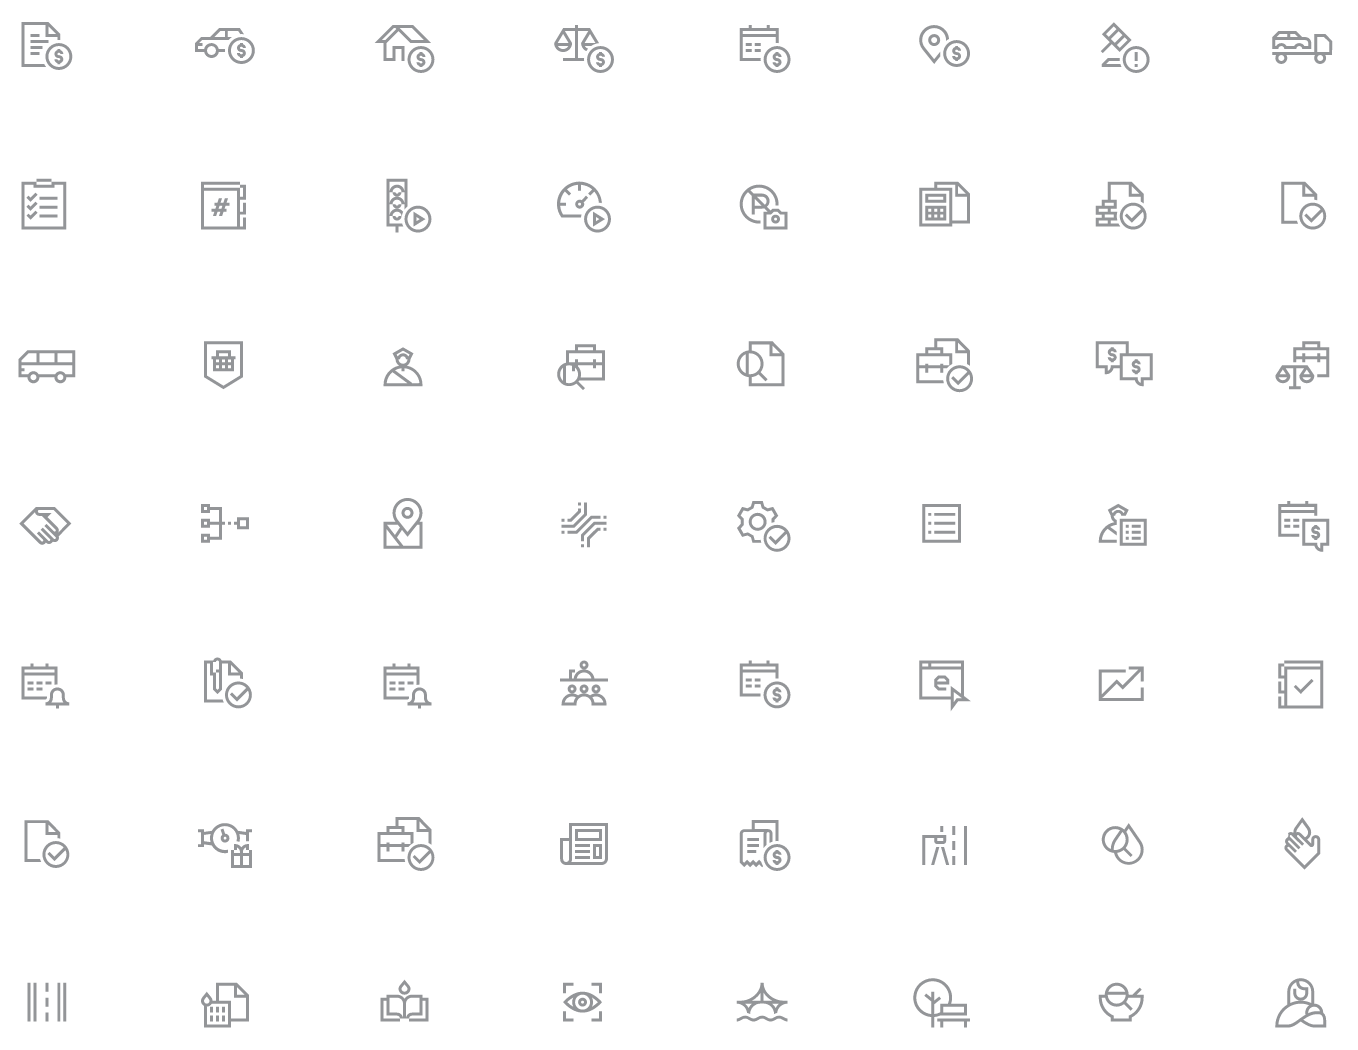 Examples of icons you can download for free